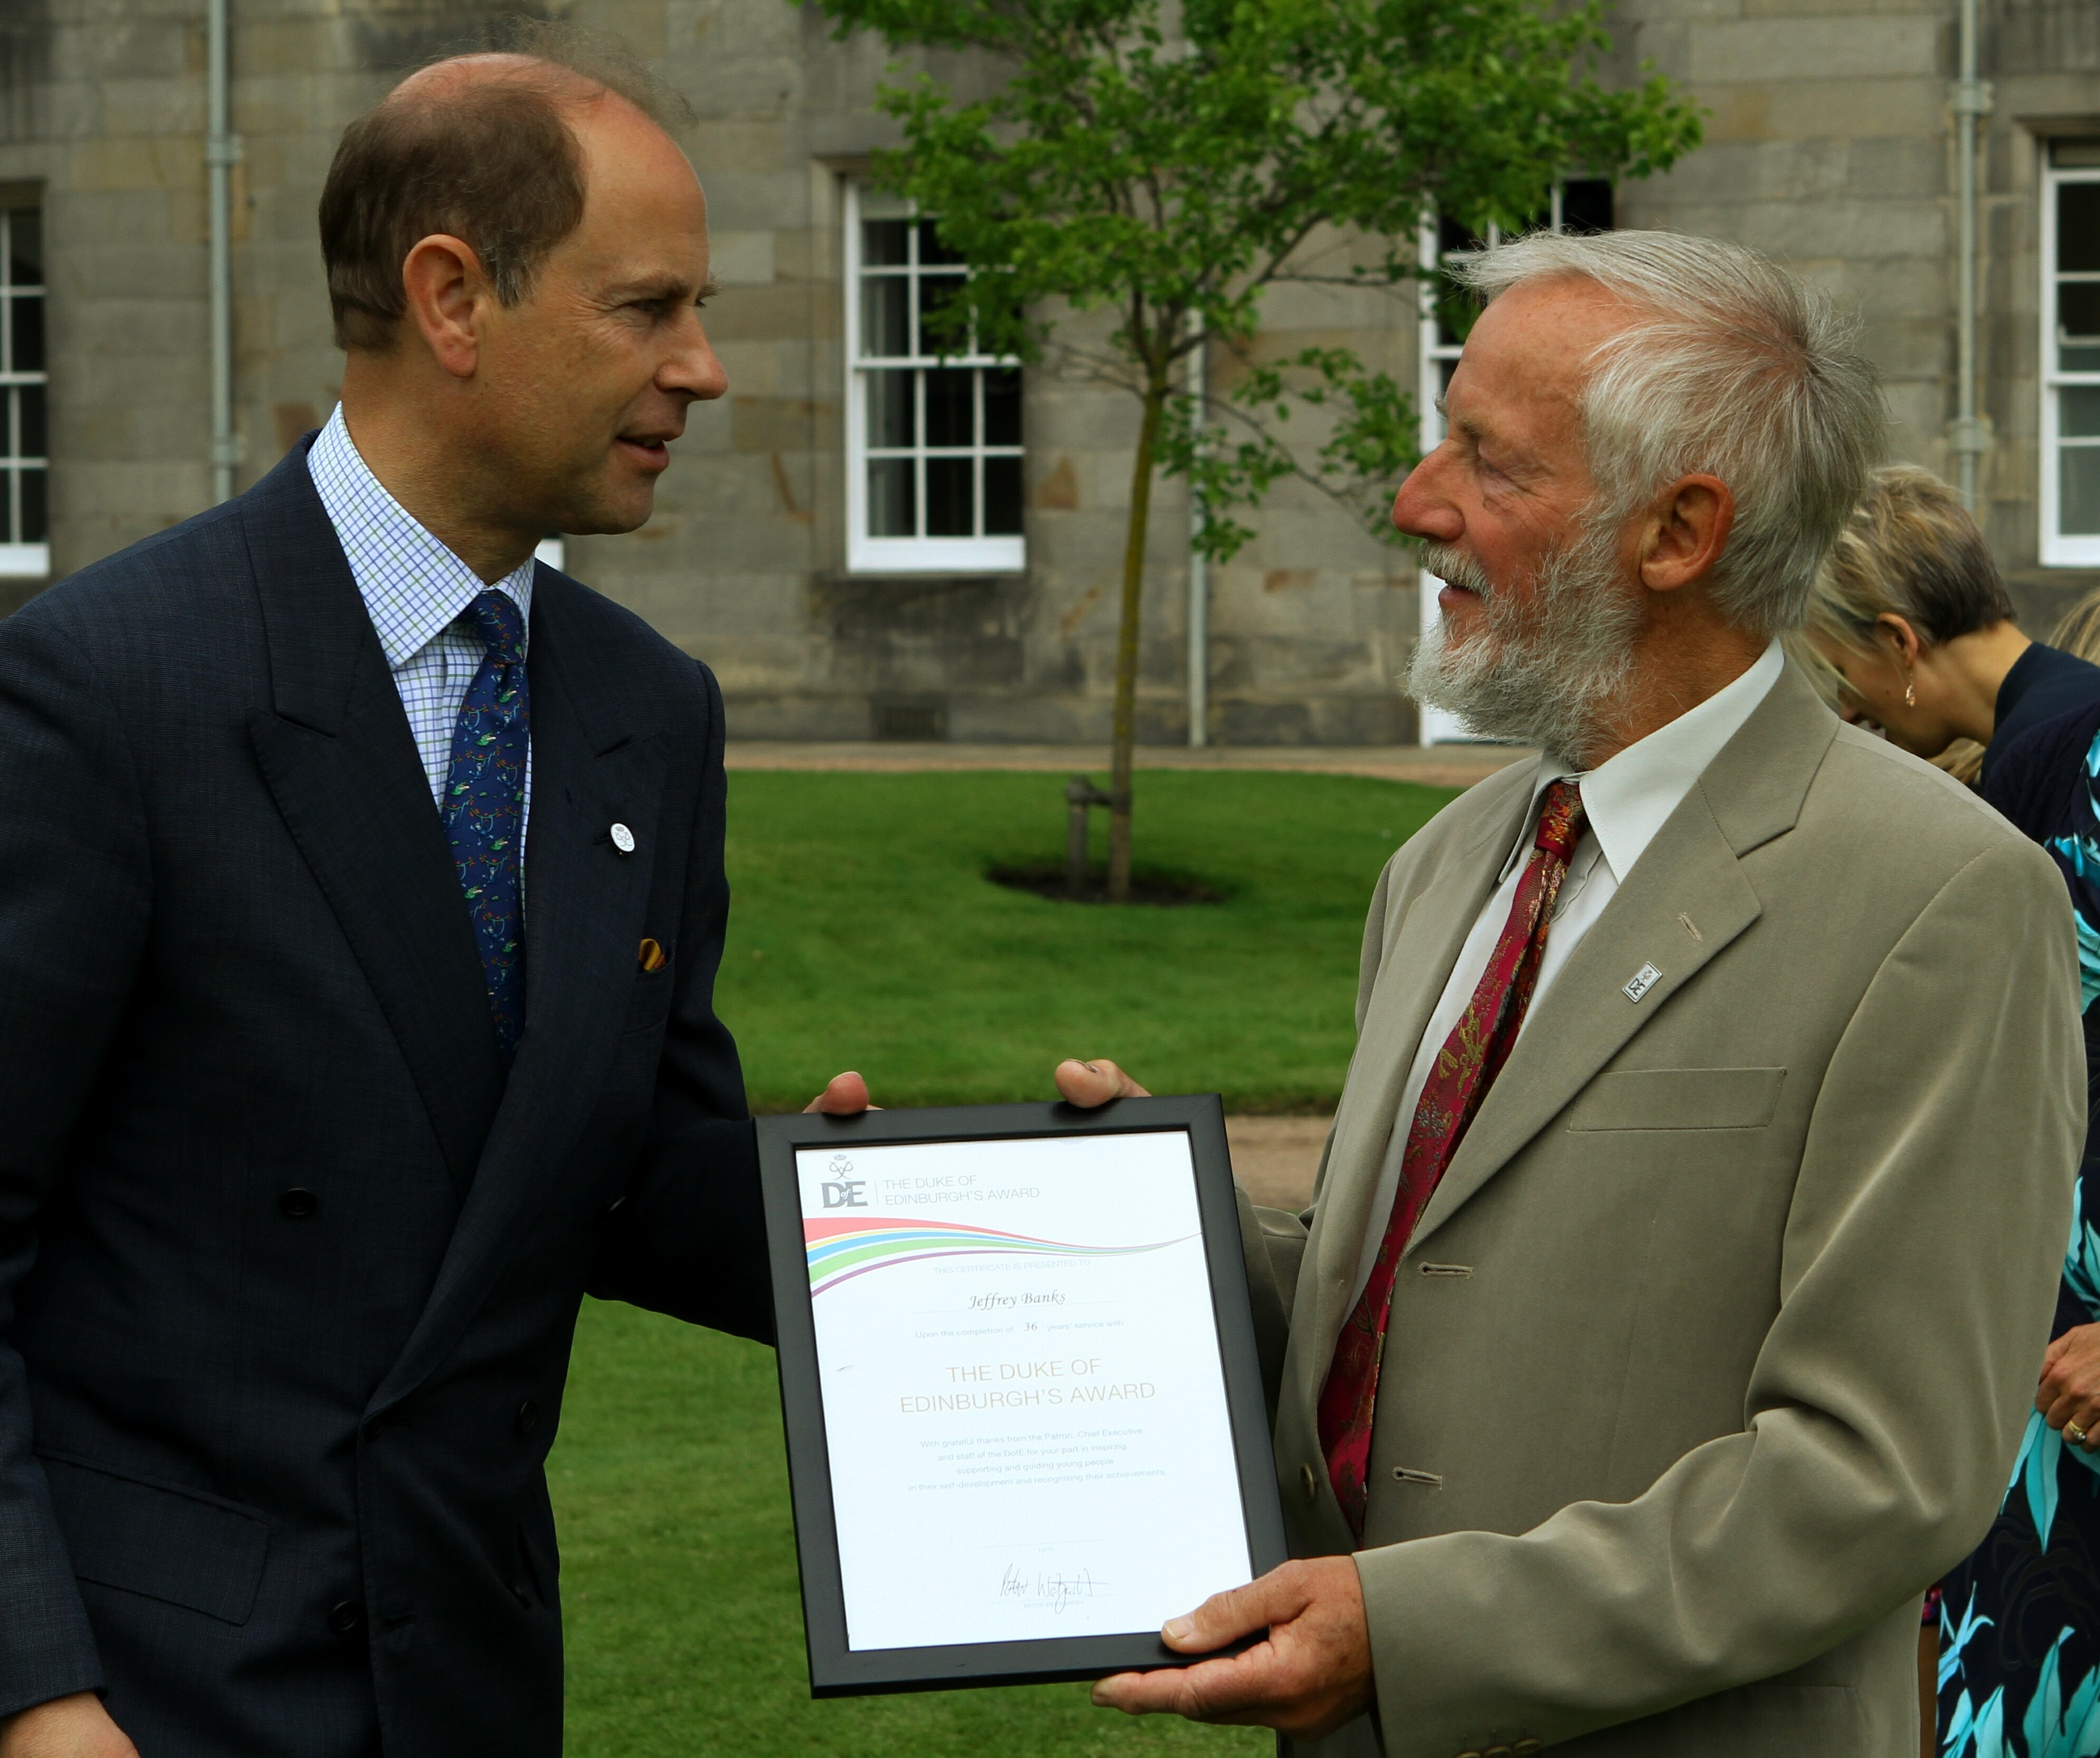 Prince Edward, the Earl of Wessex, presenting Jeffrey Banks, from Perth with his certificate on retirement.